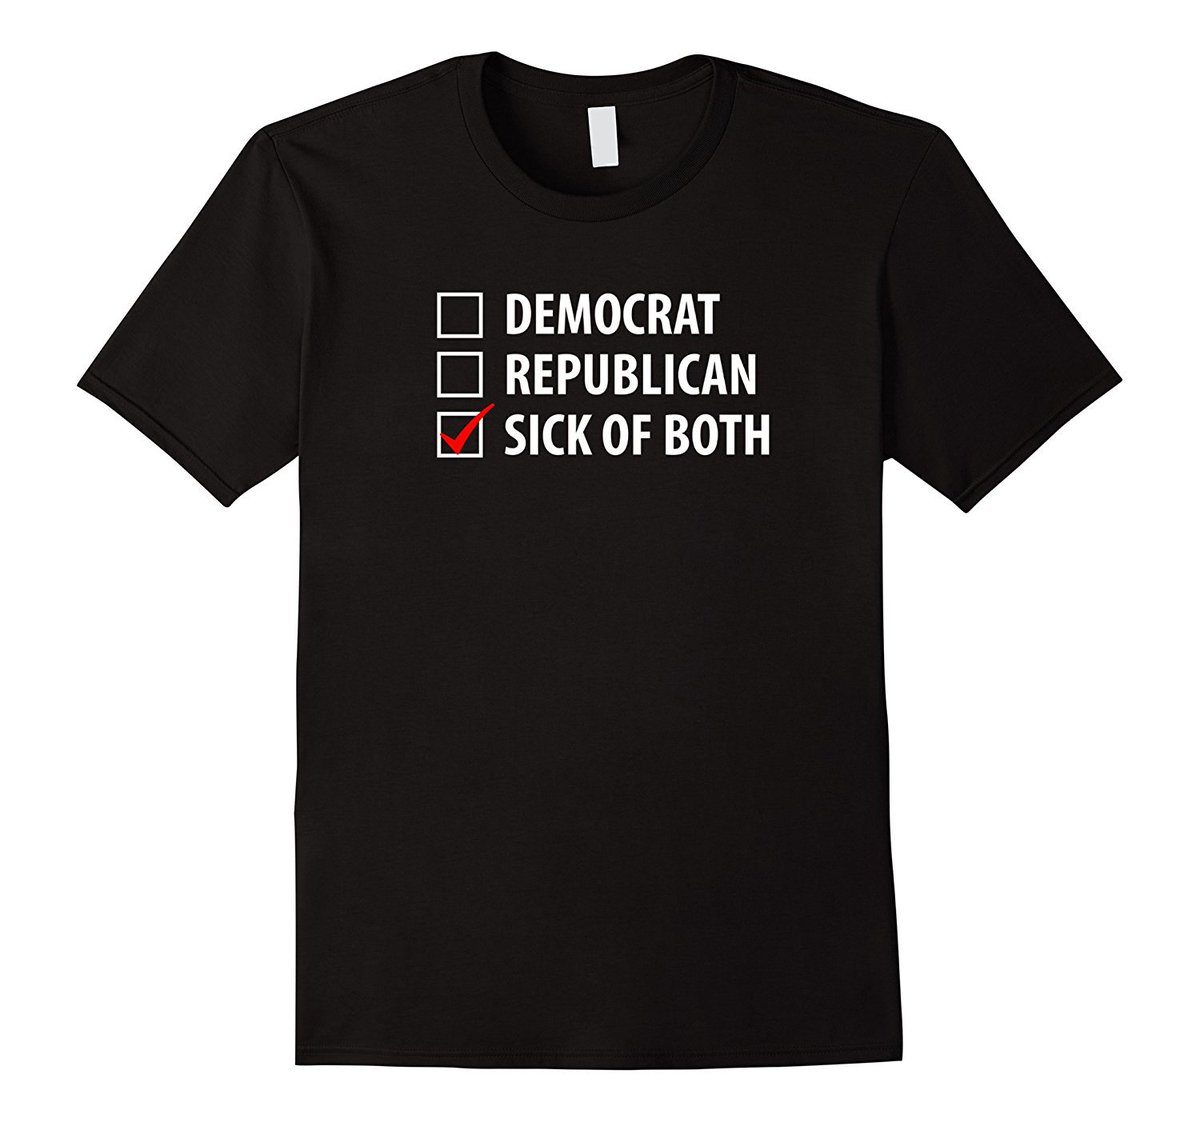 Can you relate? Check out this shirt at  https://www. amazon.com/dp/B075W61Z54  &nbsp;   #libertarian #thirdparty #DrainTheSwamp #politics <br>http://pic.twitter.com/AijoYKc5rQ